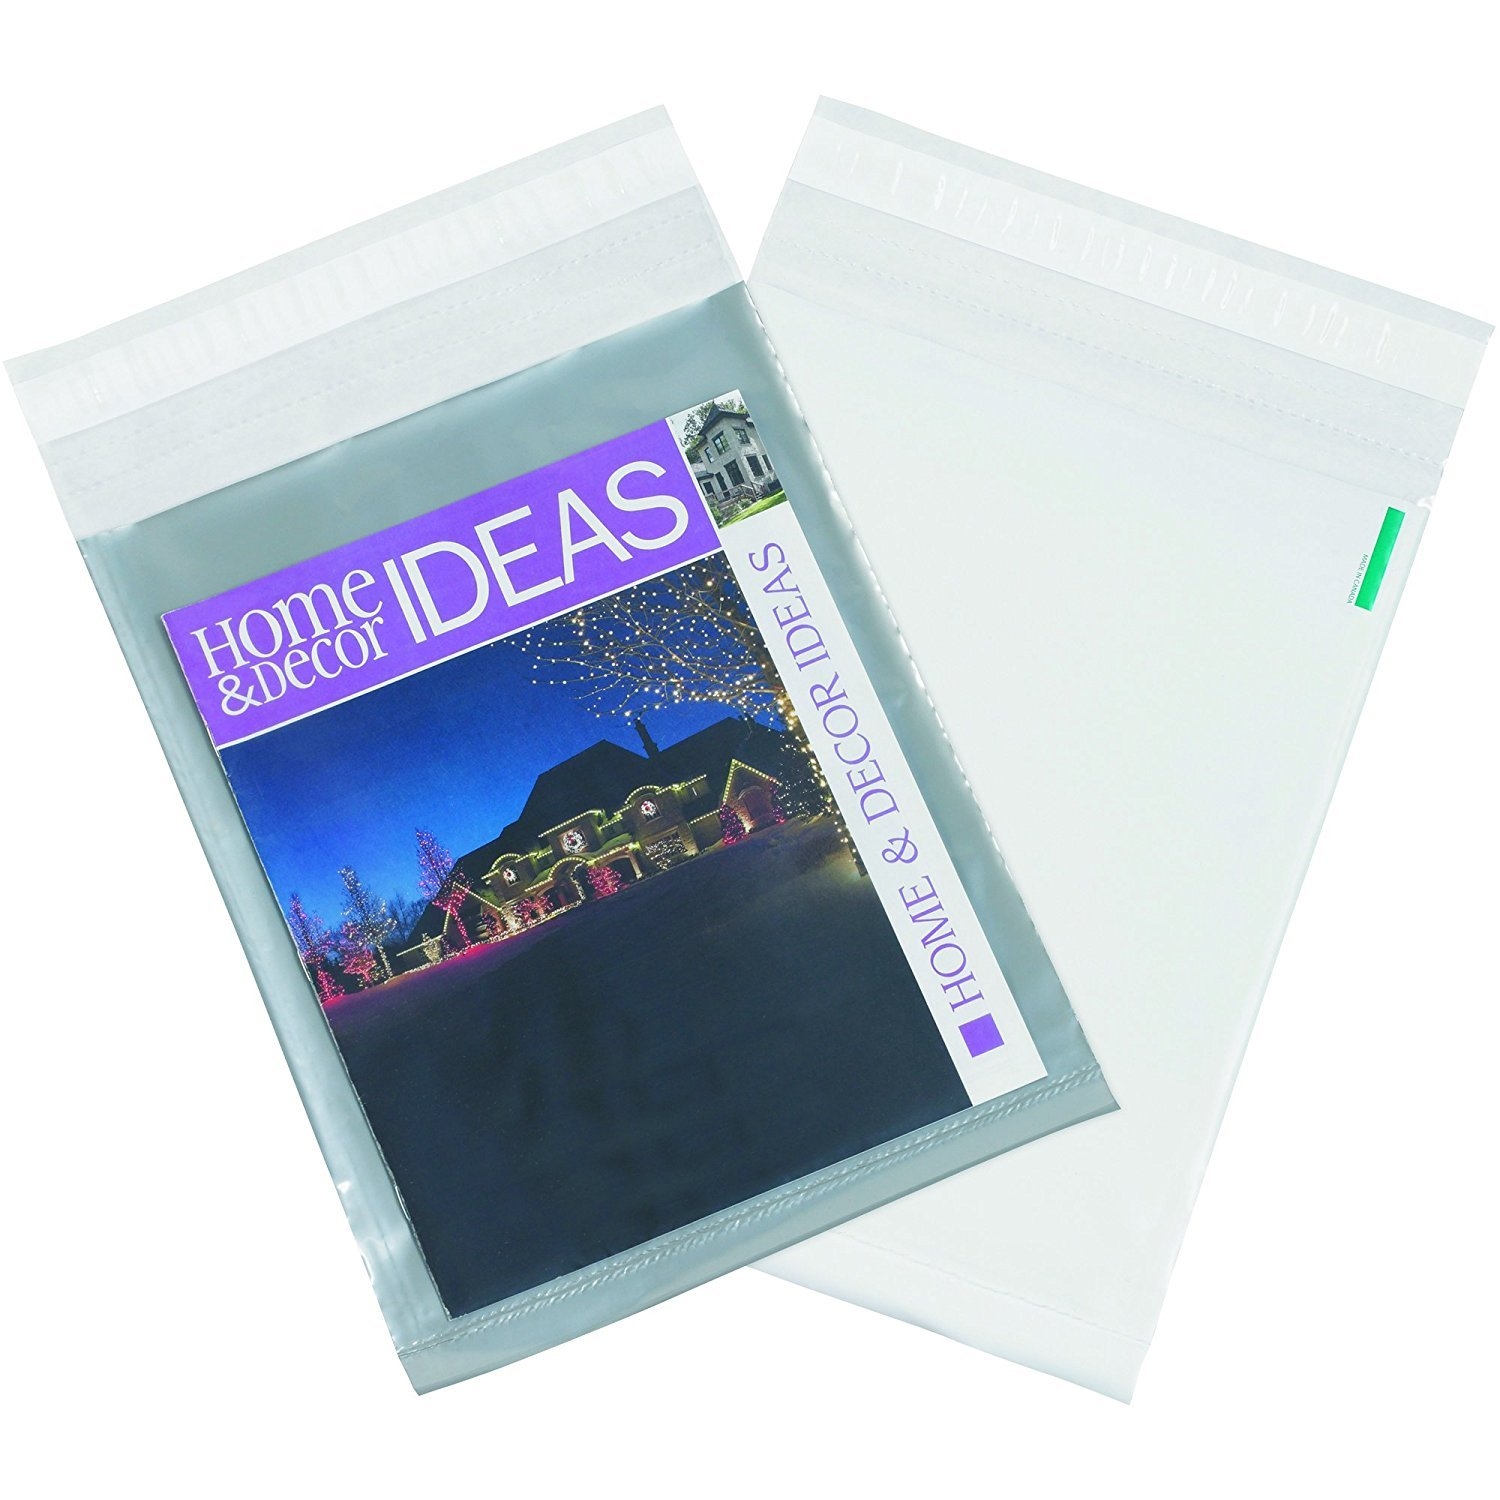 500 Count #1 6 x 9 Inch Oknuu Packaging Supplies Clear View Poly Mailers Self-Sealing Shipping Envelopes Plastic Mailing Bags 2.5 Mil Thickness 6x9 CPM6X9 (500 Pack)